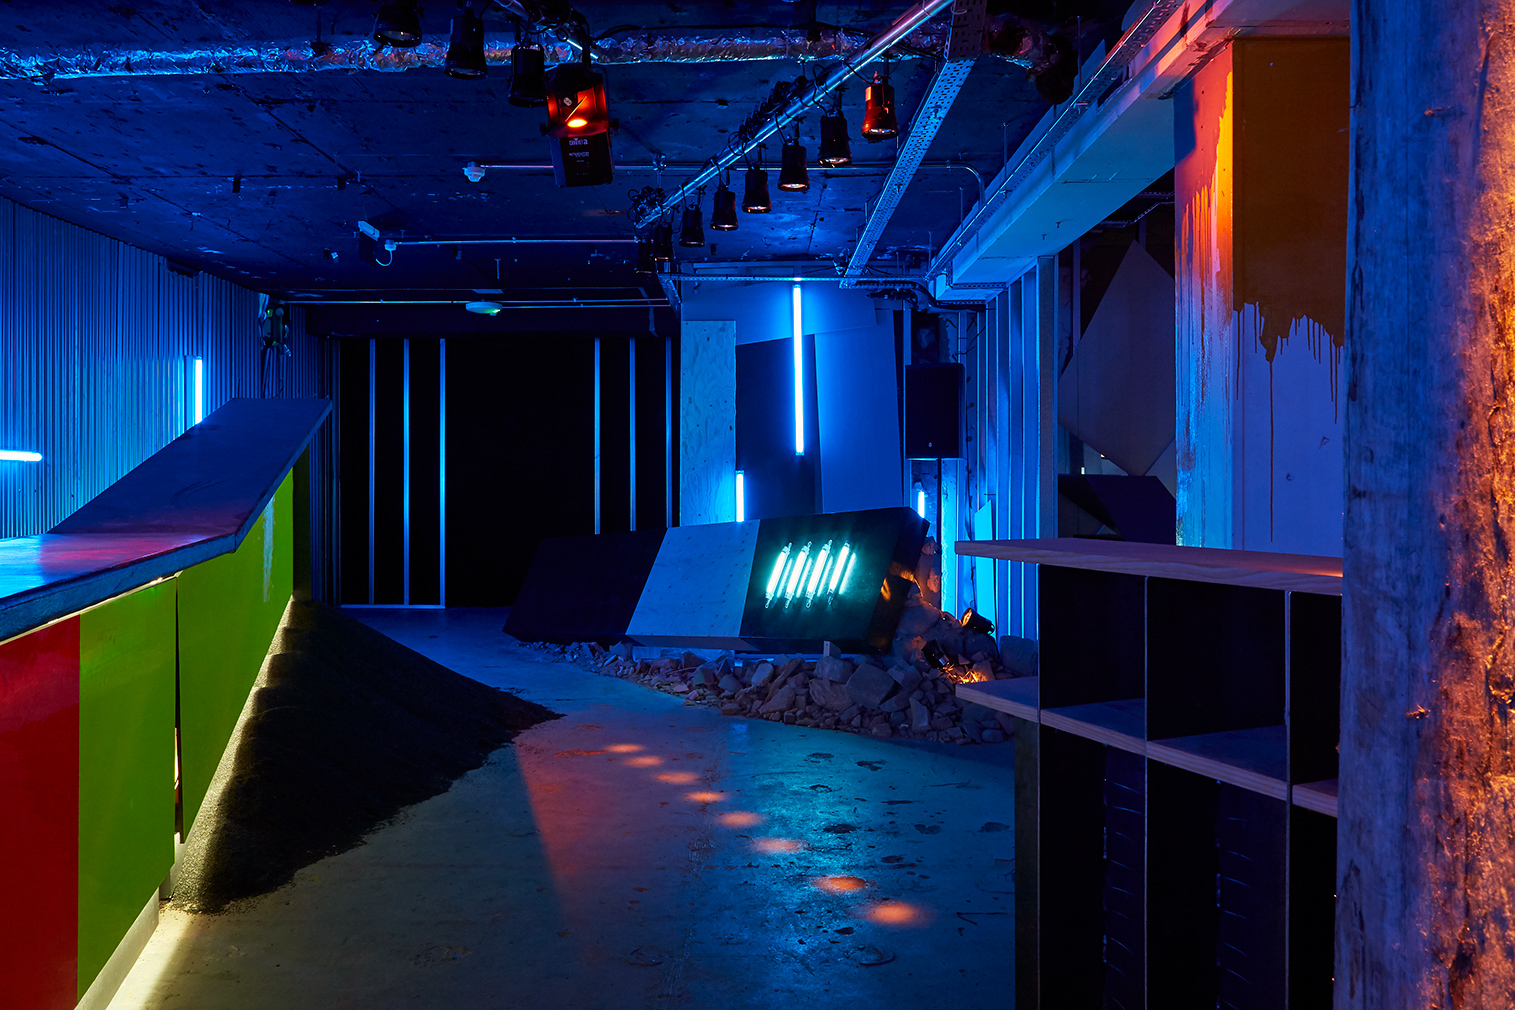 9 fashion designers inspired by architecture: Virgil Abloh. Pictured is his 'Ruin' nightclub installation